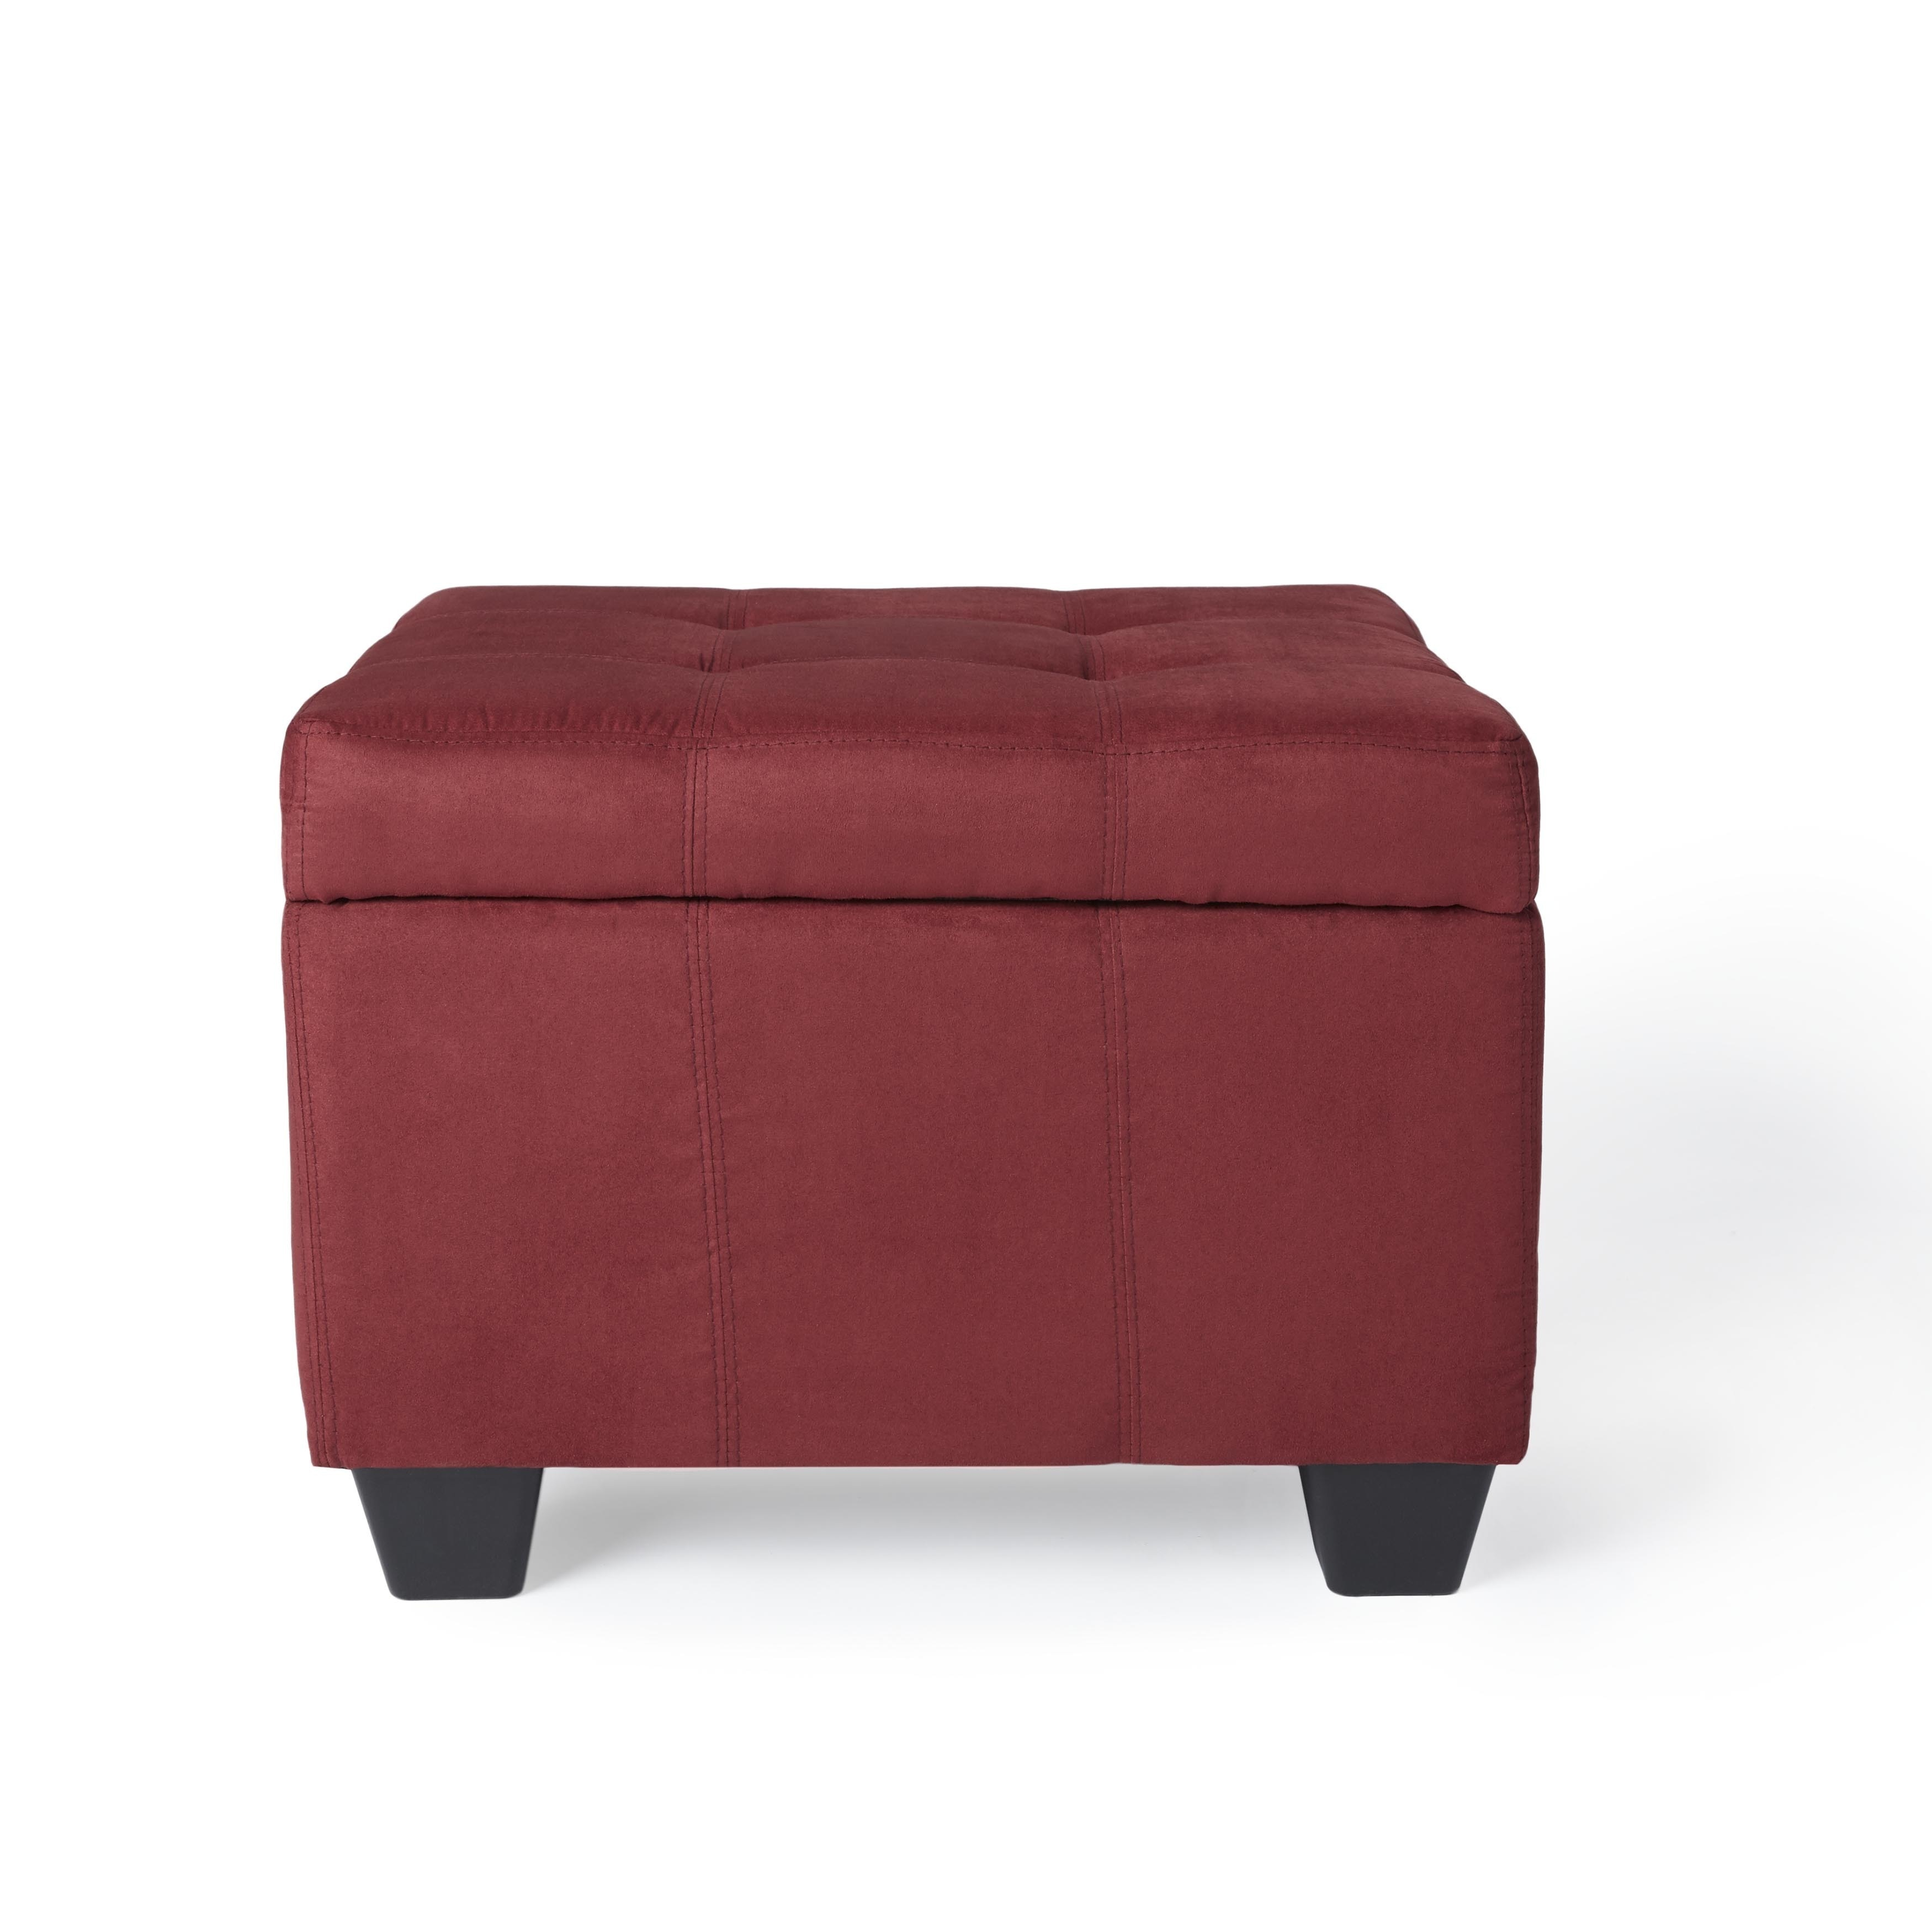 ottoman philbee square online ottomans interiors leather canvas polo collections charleston